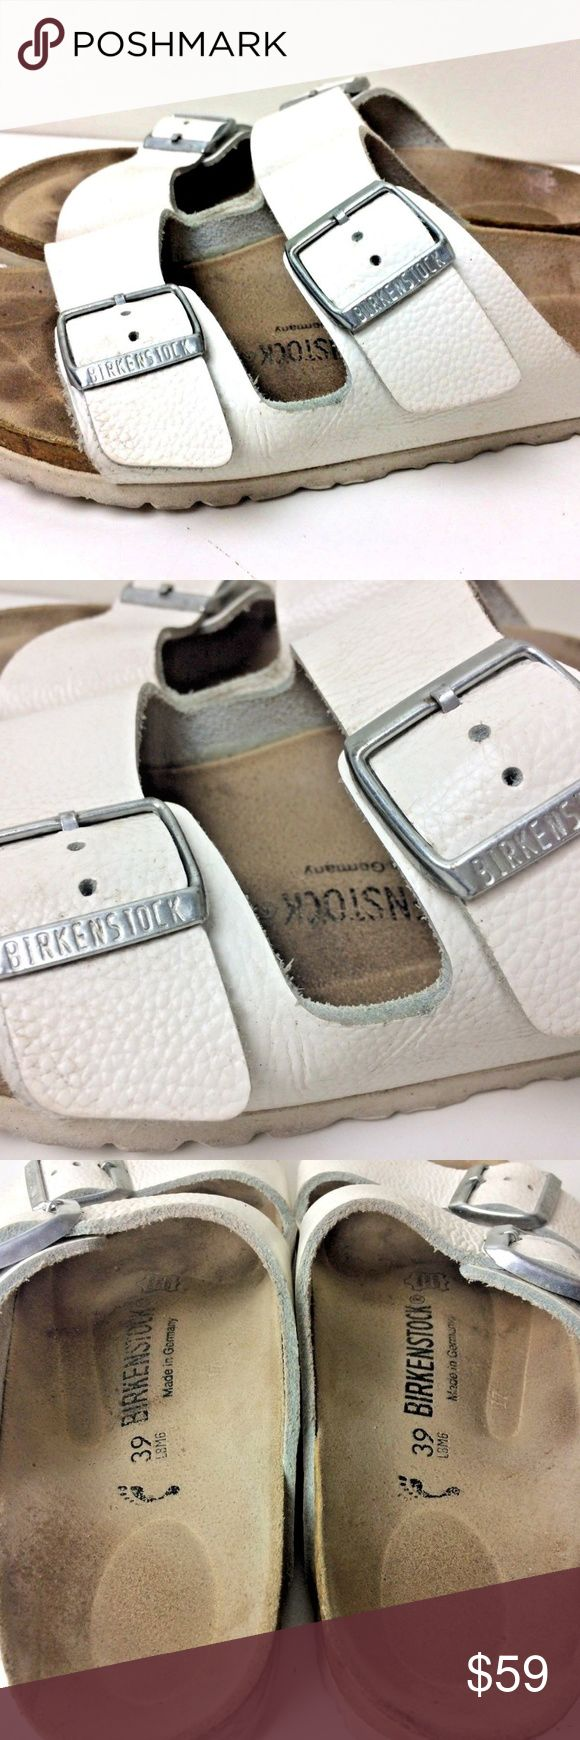 """Birkenstock Arizona White Pebbled Leather Sandals Birkenstock Arizona Sandals  Size 39 F 8 / M 6  White leather uppers with two straps and buckles, contoured cork foot bed includes double jute layer for better-than-barefoot comfort. Raised toe bar, roomy toe box, arch support, and deep heel cup with suede foot bed liner and a rubber outer sole Measurements taken from the outer foot bed heel to toe: 10 1/2"""" widest part of sole: 4"""" pre owned with normal wear,marks,scuffs,scratches to the…"""